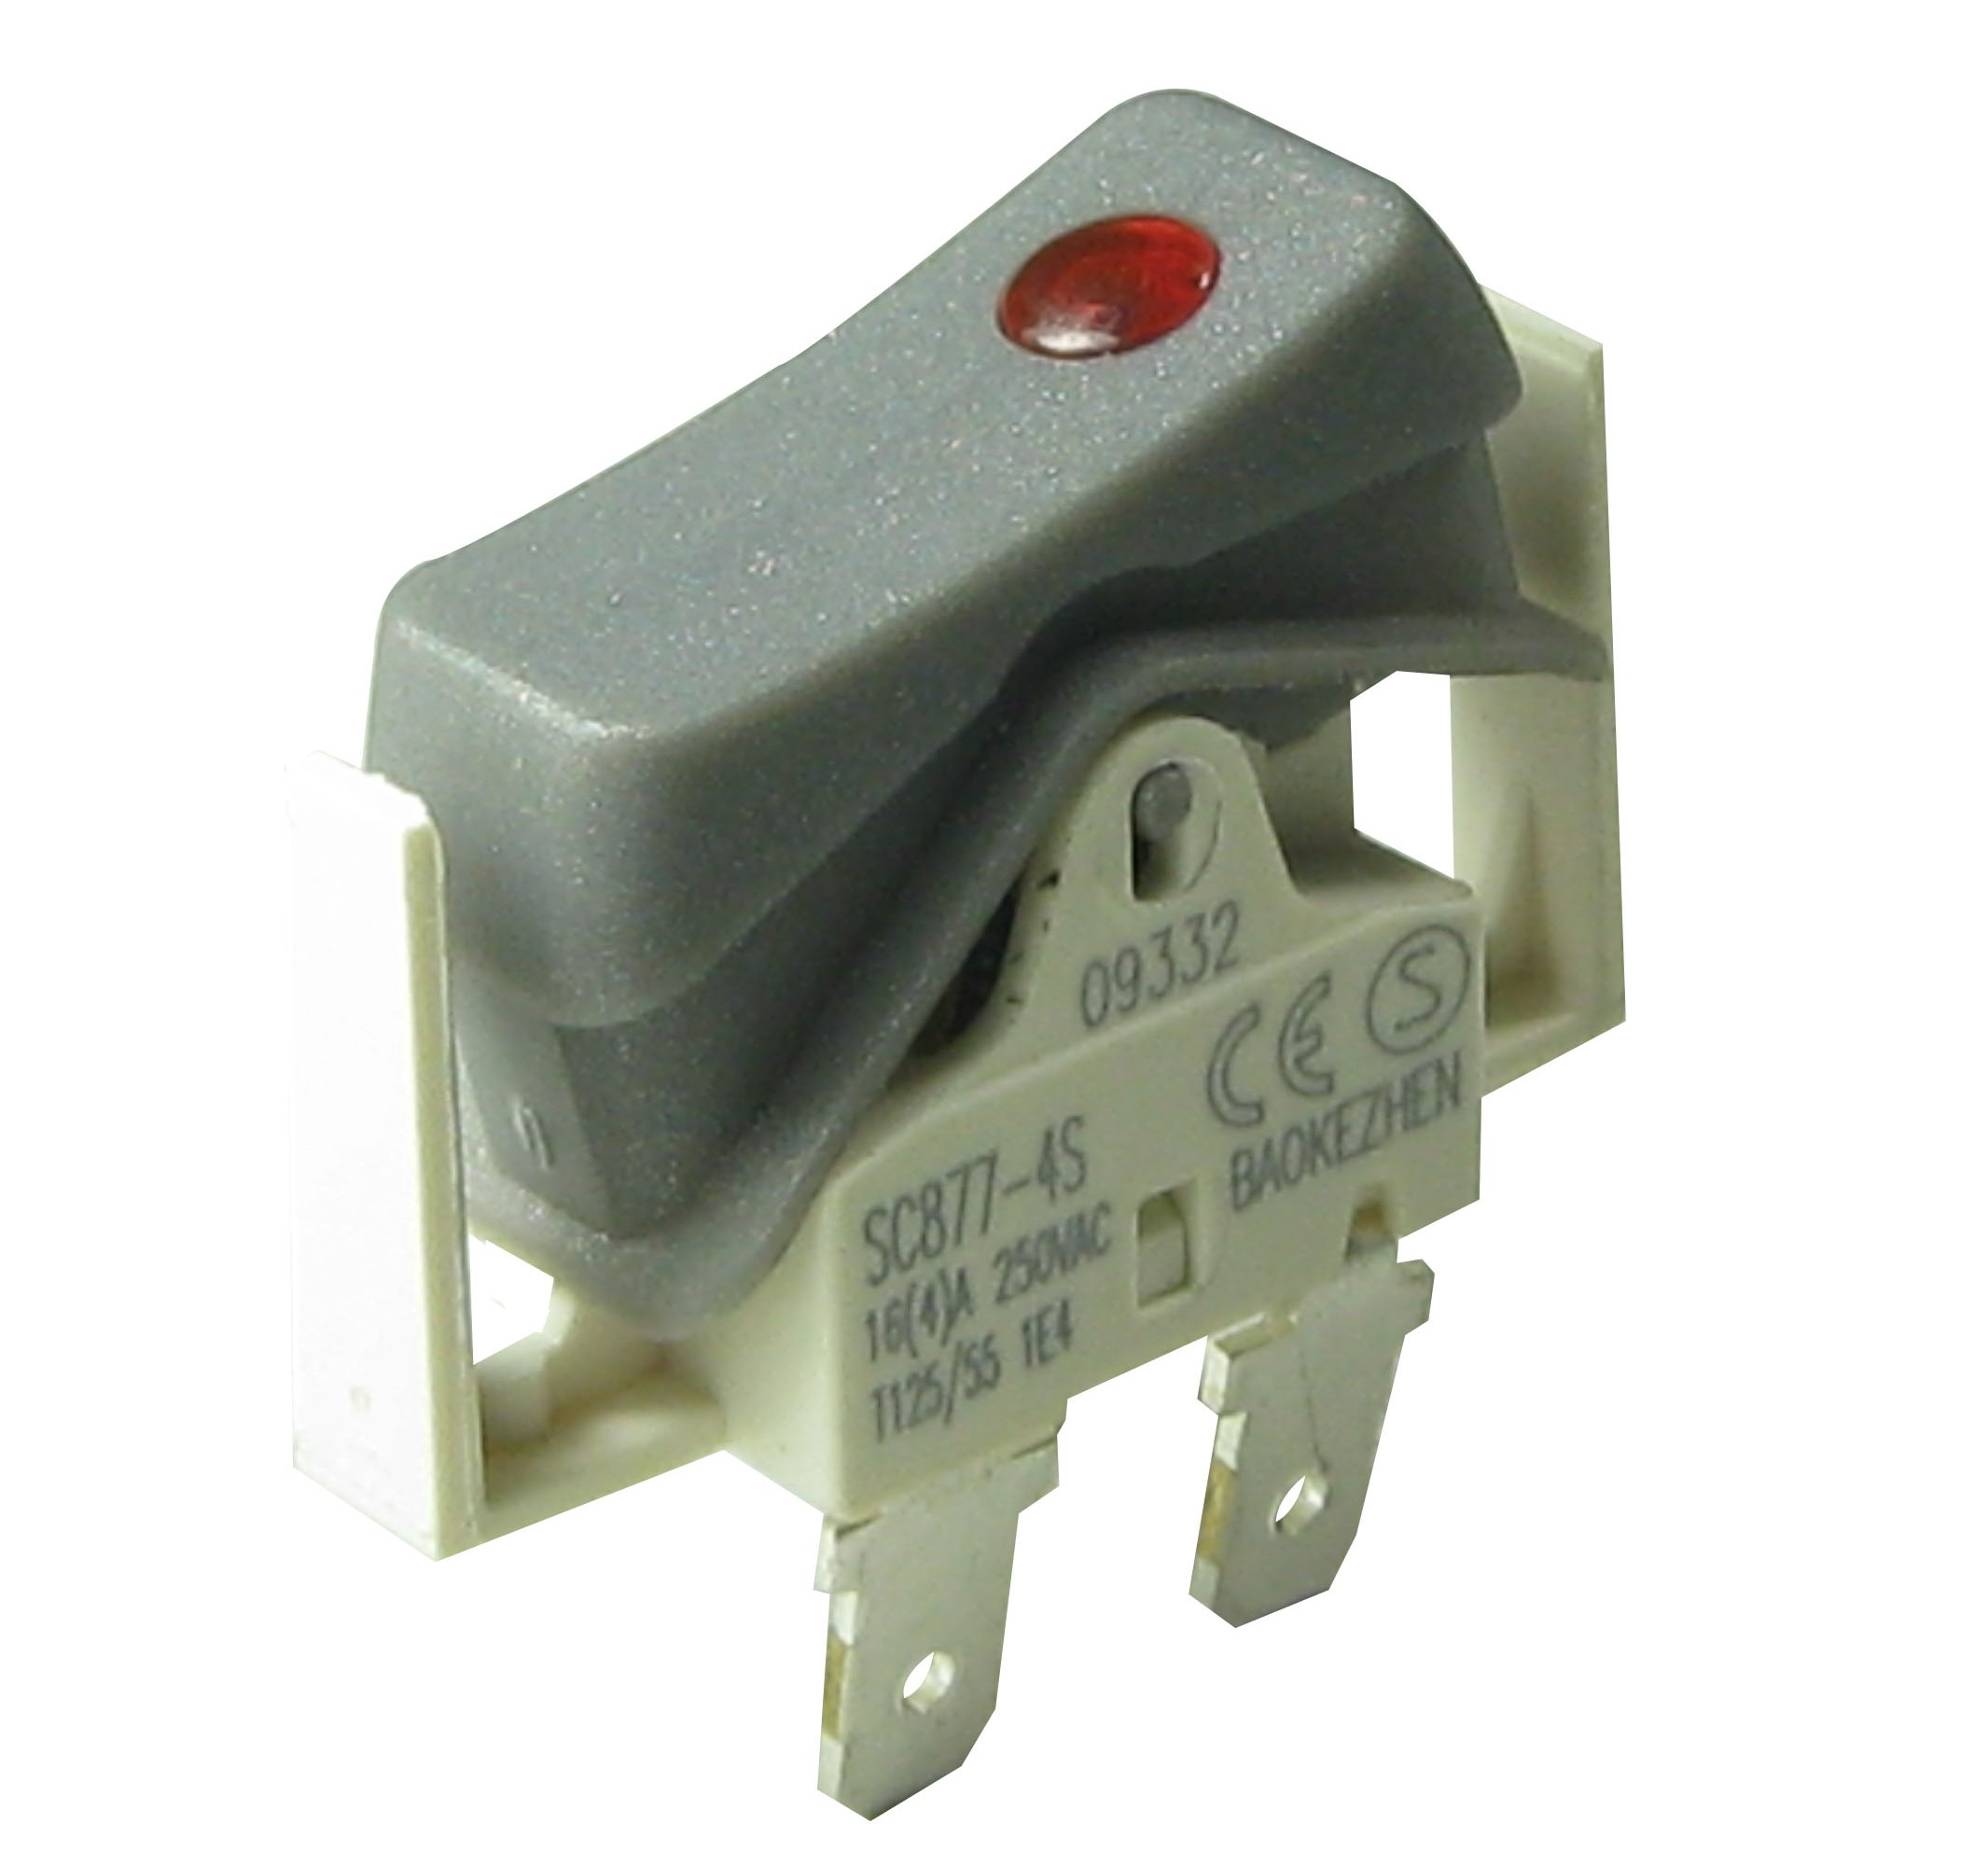 SC877 baokezhen  On-Off 2 pin, On-Off with Led 3pin  Rocker Switch factory